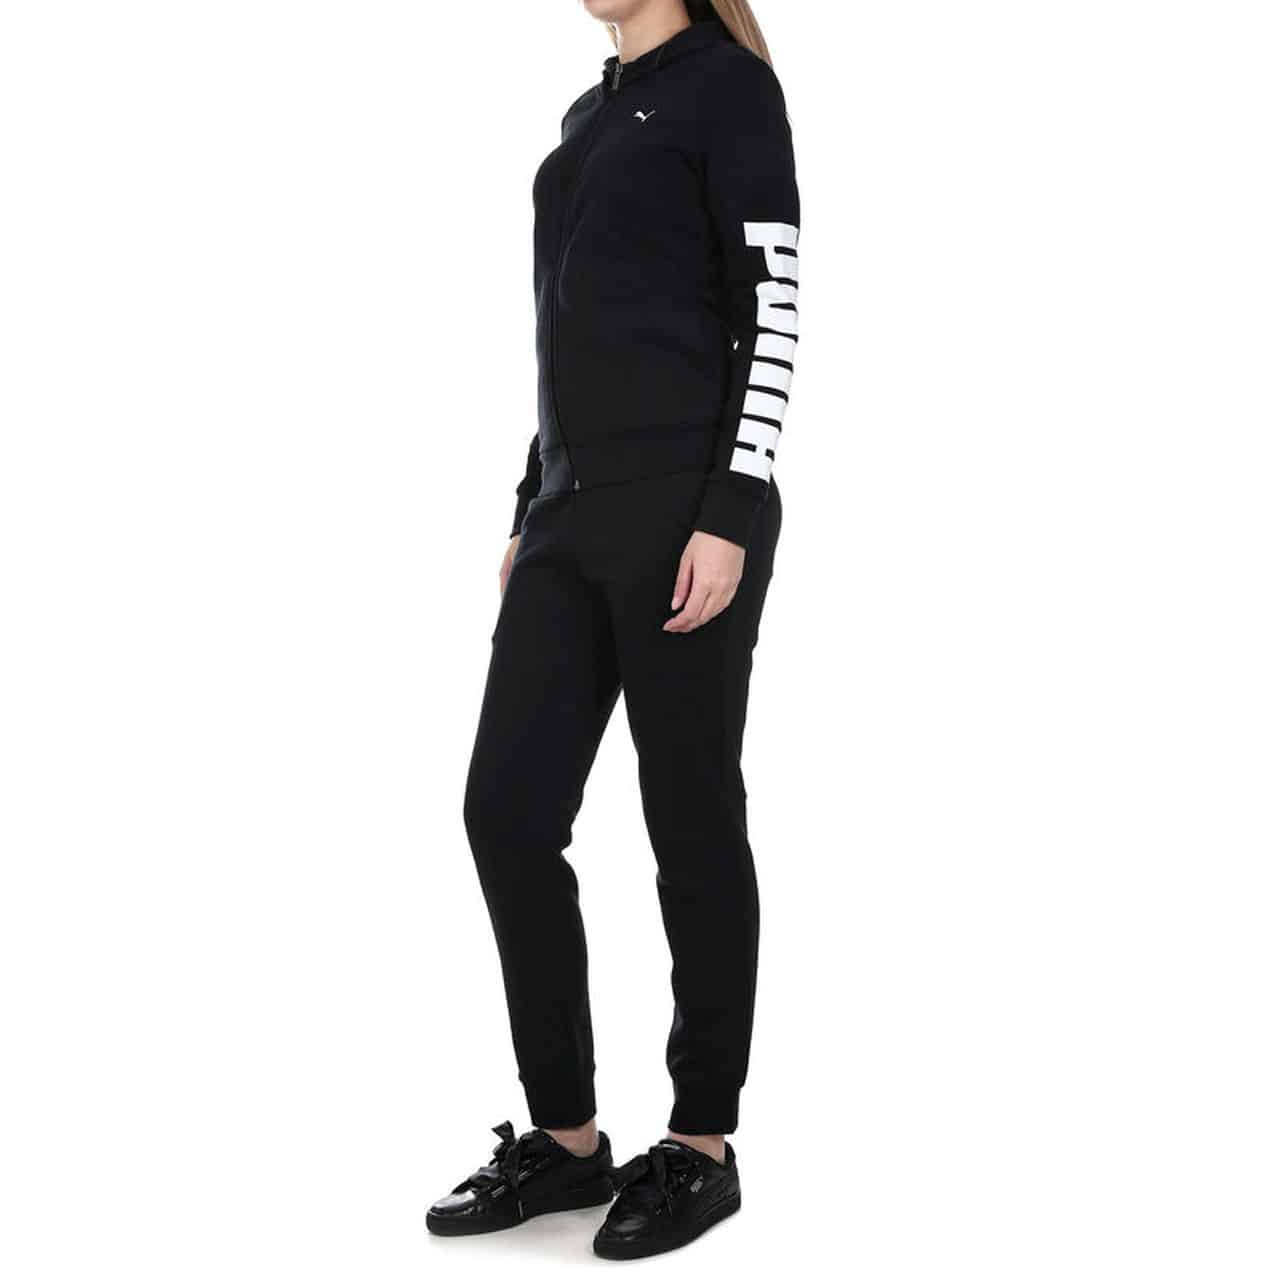 TRENING ORIGINAL PUMA REBEL SWEAT SUIT - 580494 01